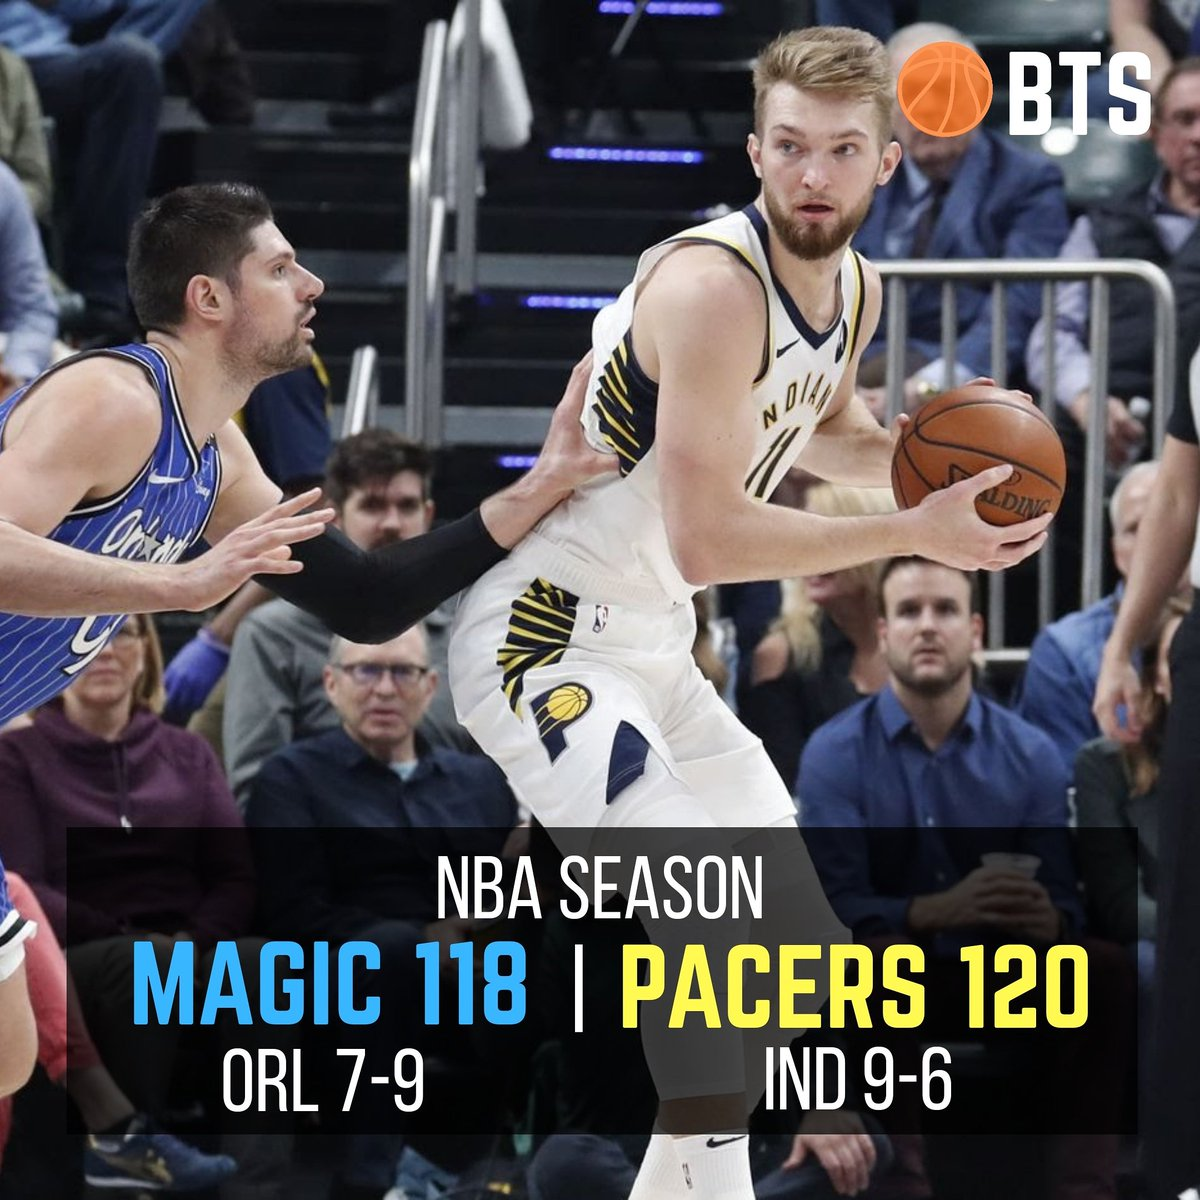 The Indiana Pacers defeat the Orlando Magic 120-118 in OT.  #sports #game #orlandomagic #magicaboveall #puremagic #podcast #spotify #applepodcasts #nba #MagicNation #Basketball #ESPN #followme #likeforlike #like4like #follow4follow #followforfollow #indianapacers